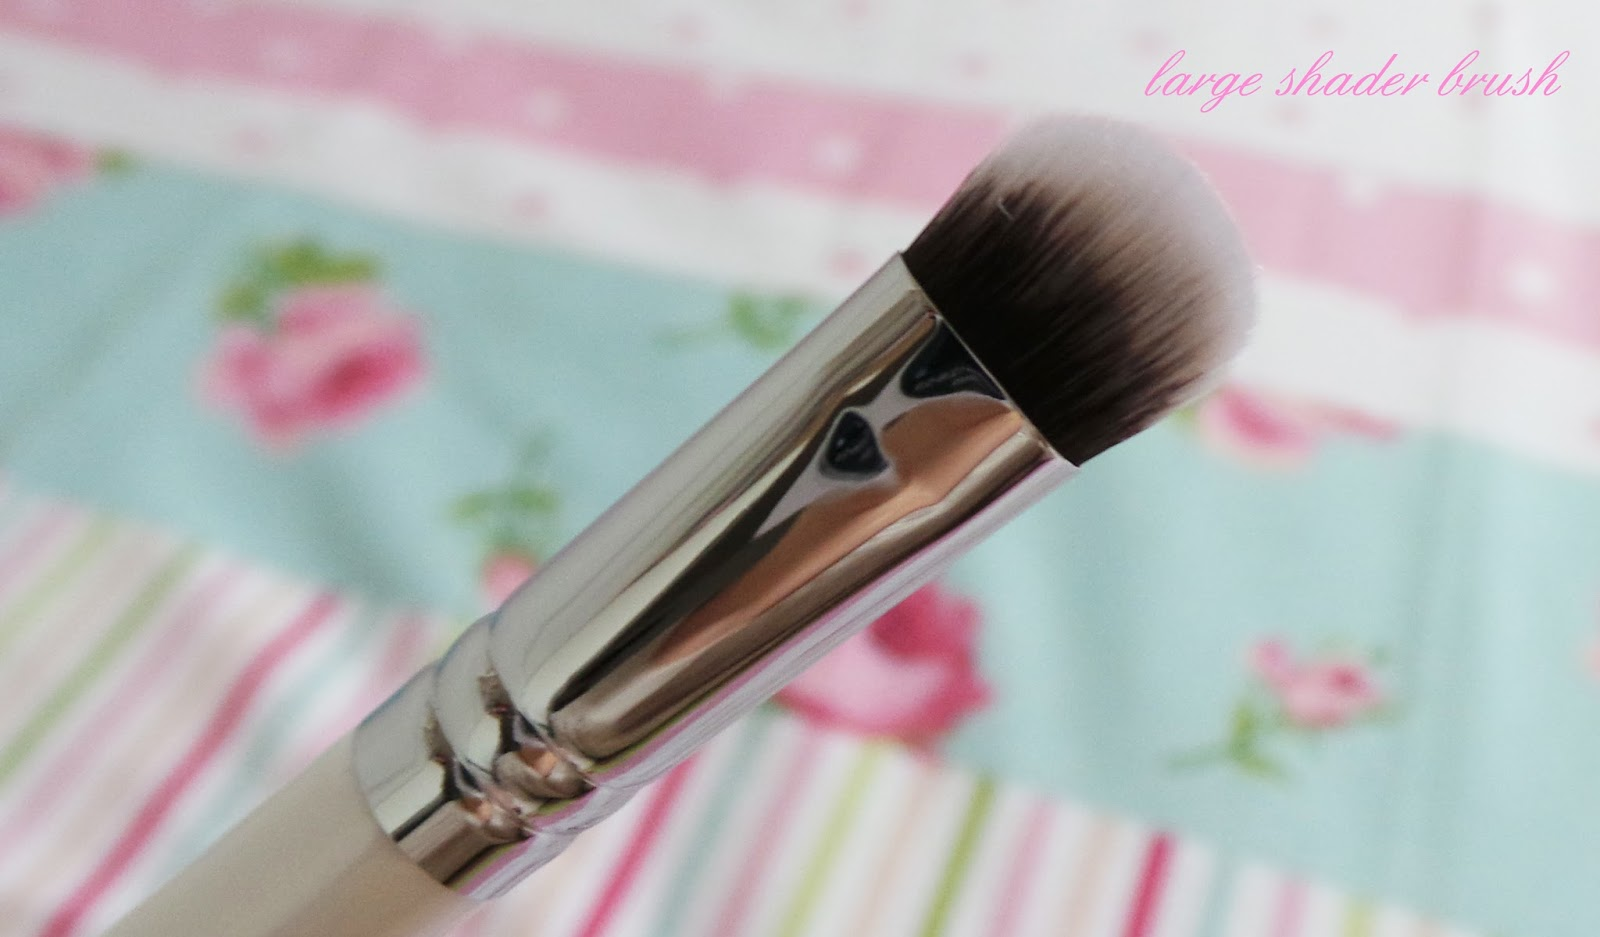 nanshy large shader brush review